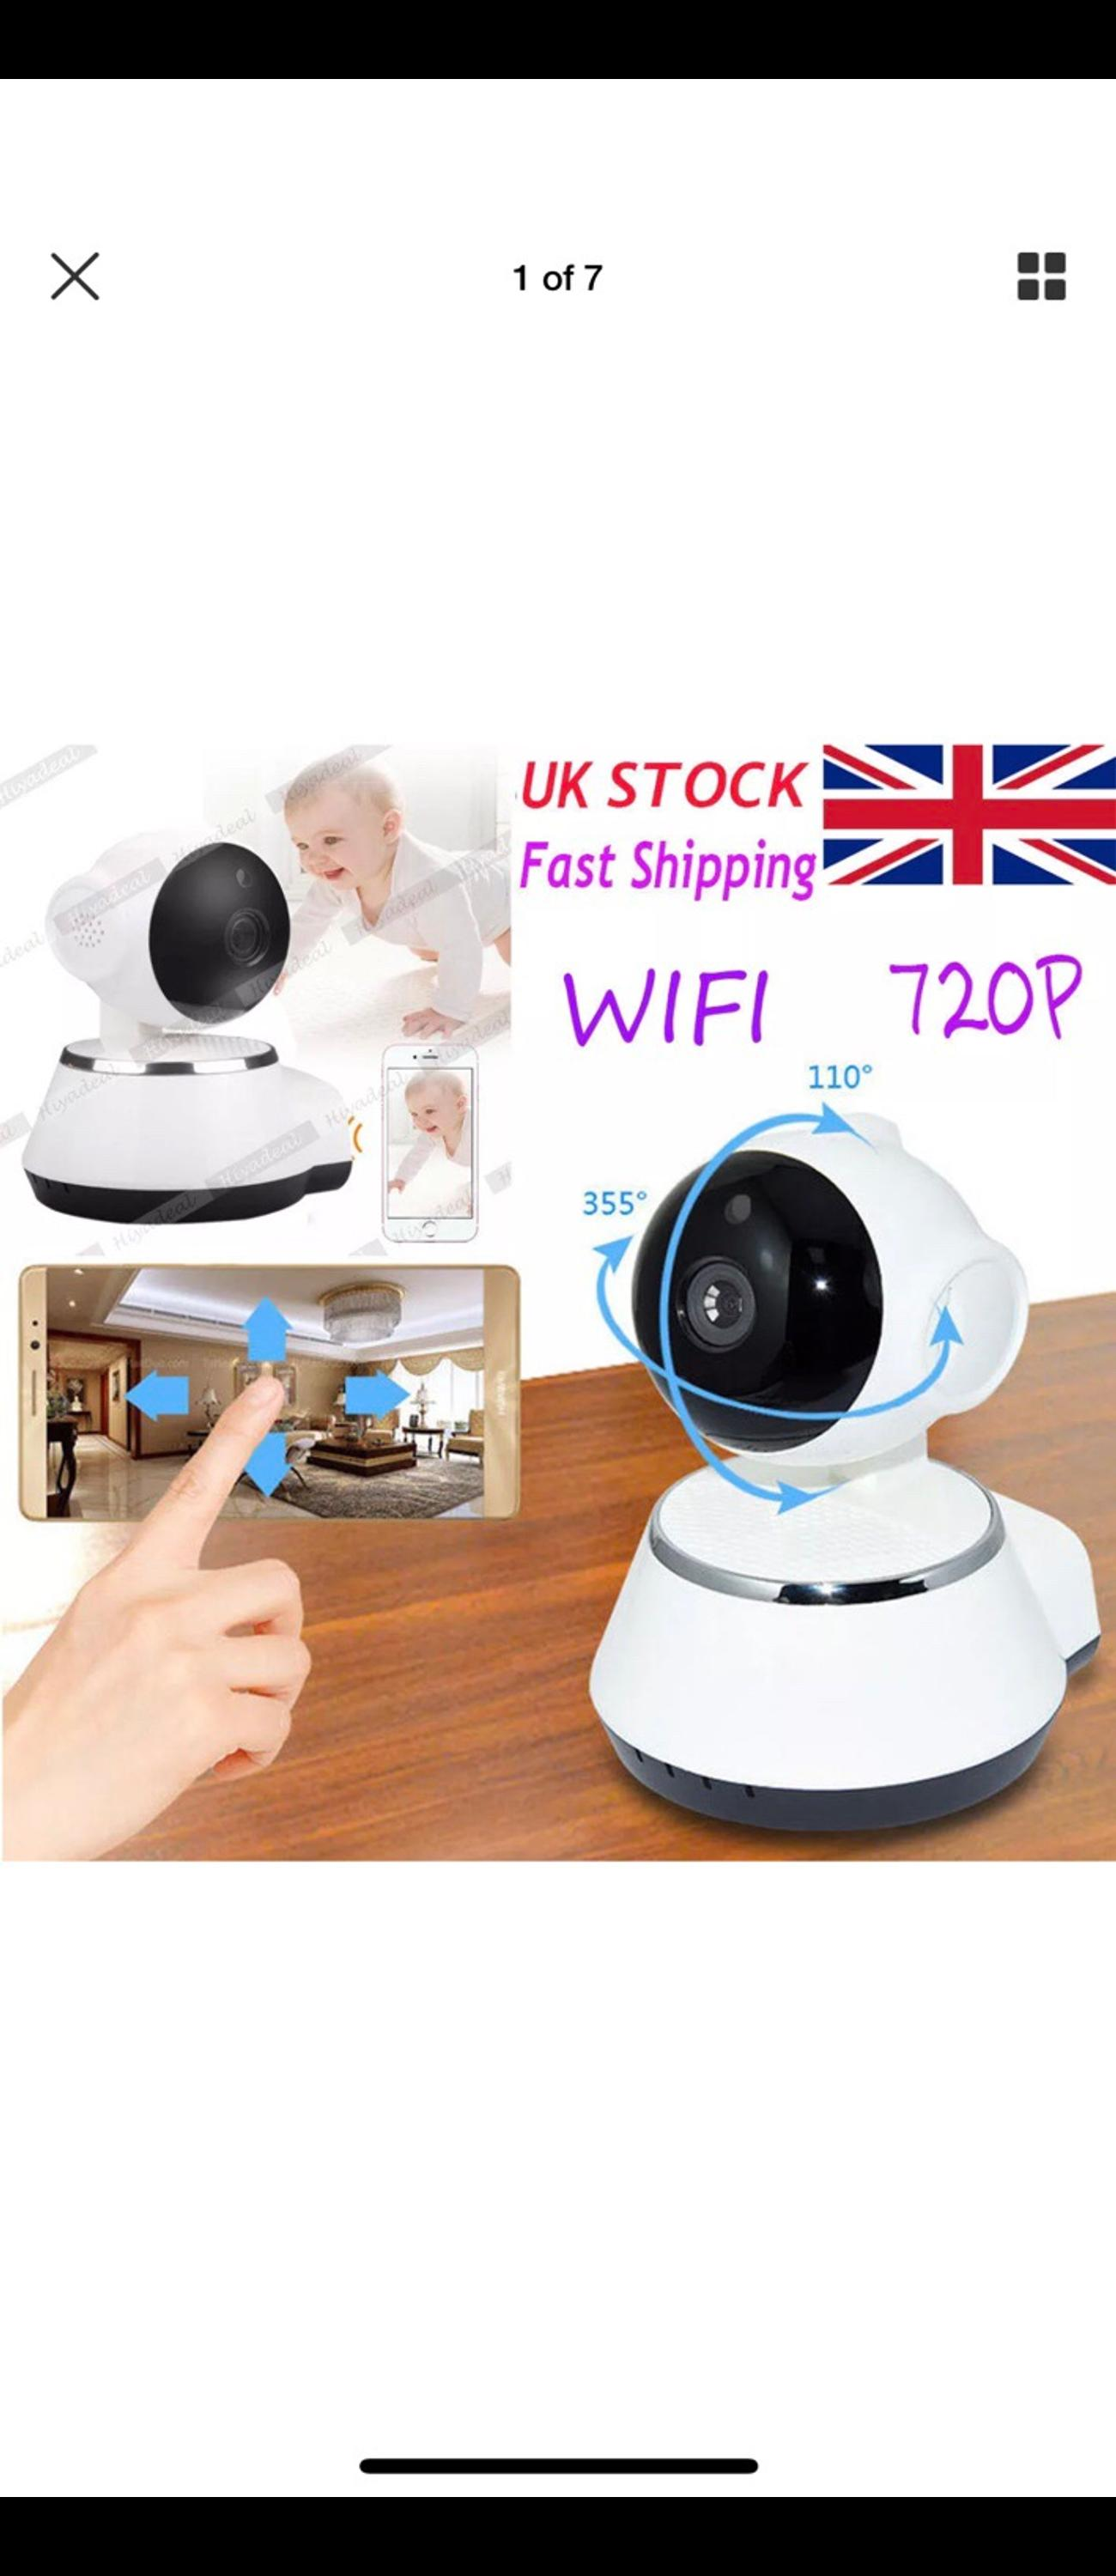 Ip camera 720p app support IOS/ANDROID in LE9 Hinckley and